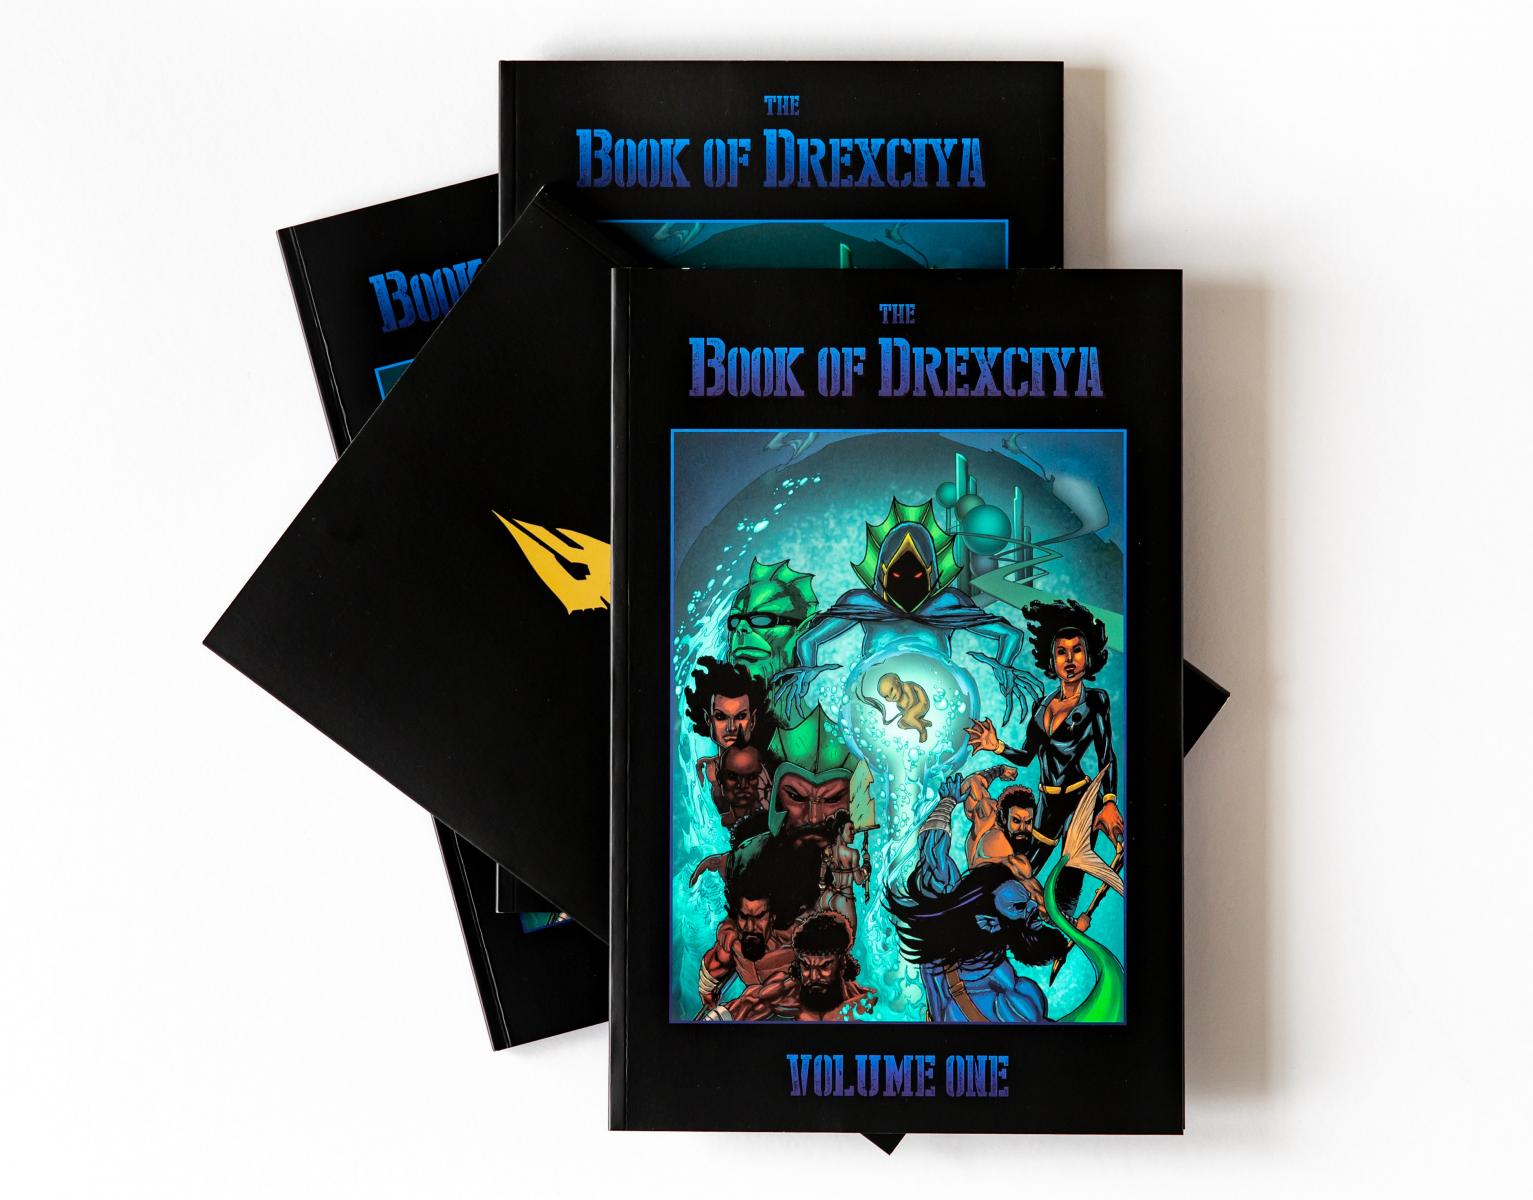 the book of drexciya vol 1 published